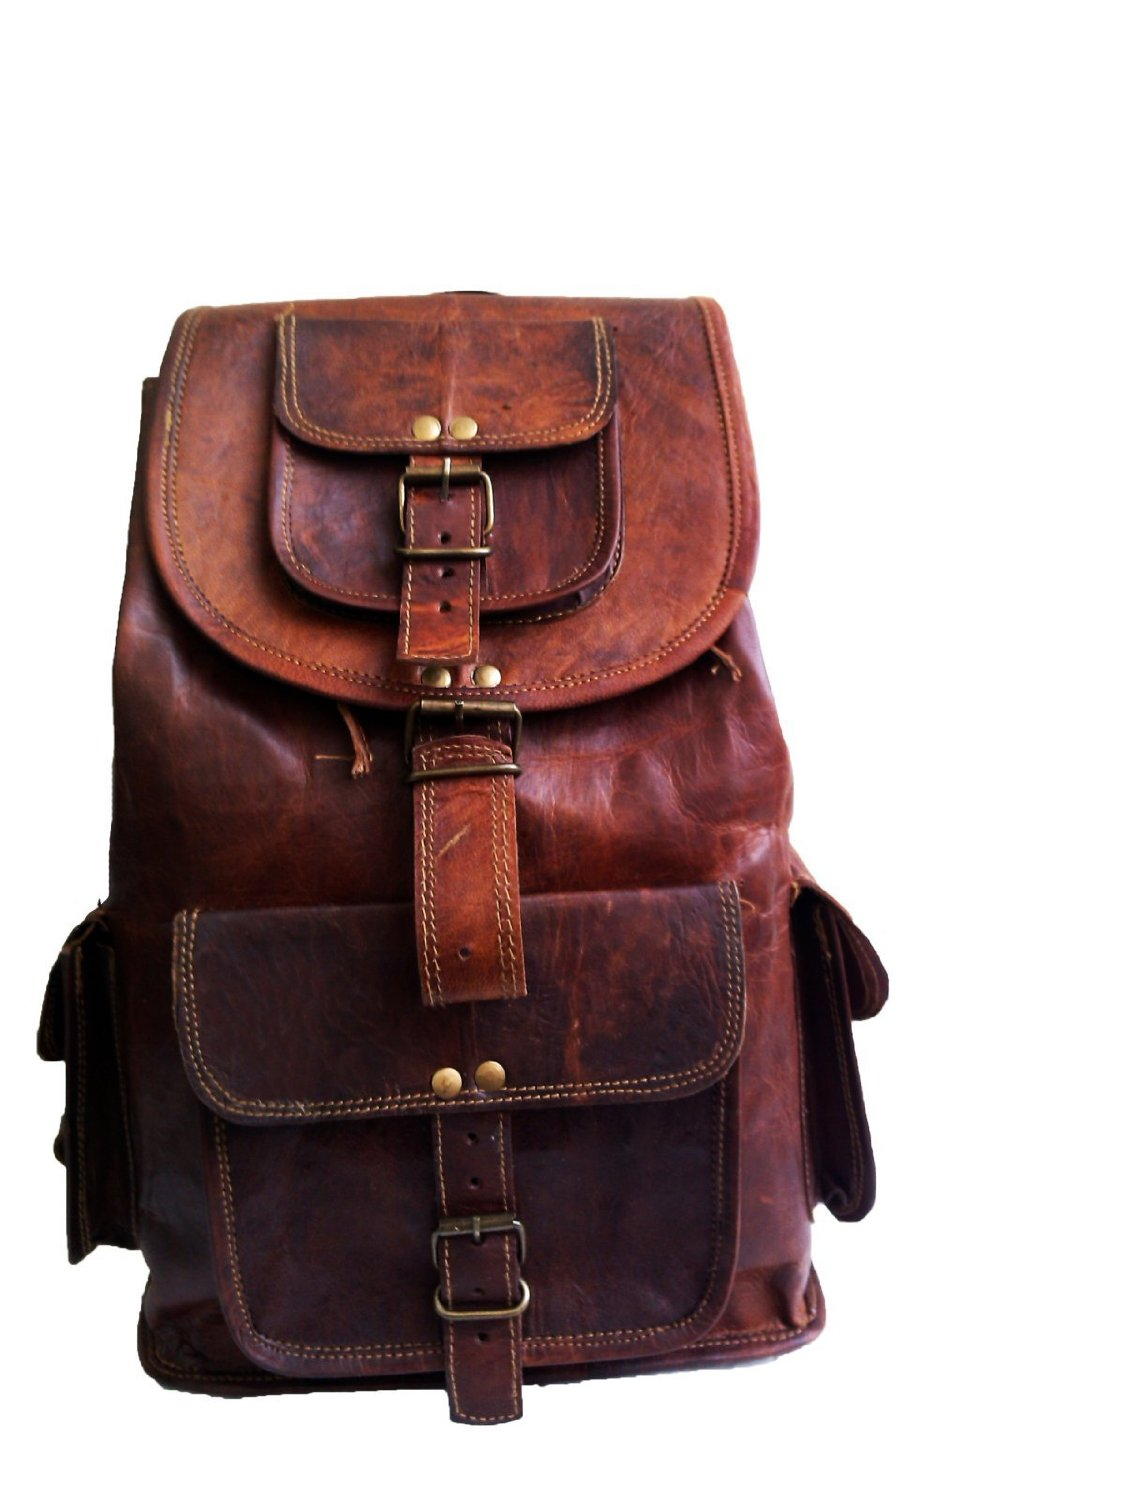 Get Quotations 16 Genuine Leather Retro Rucksack Backpack College Bag School Picnic Travel